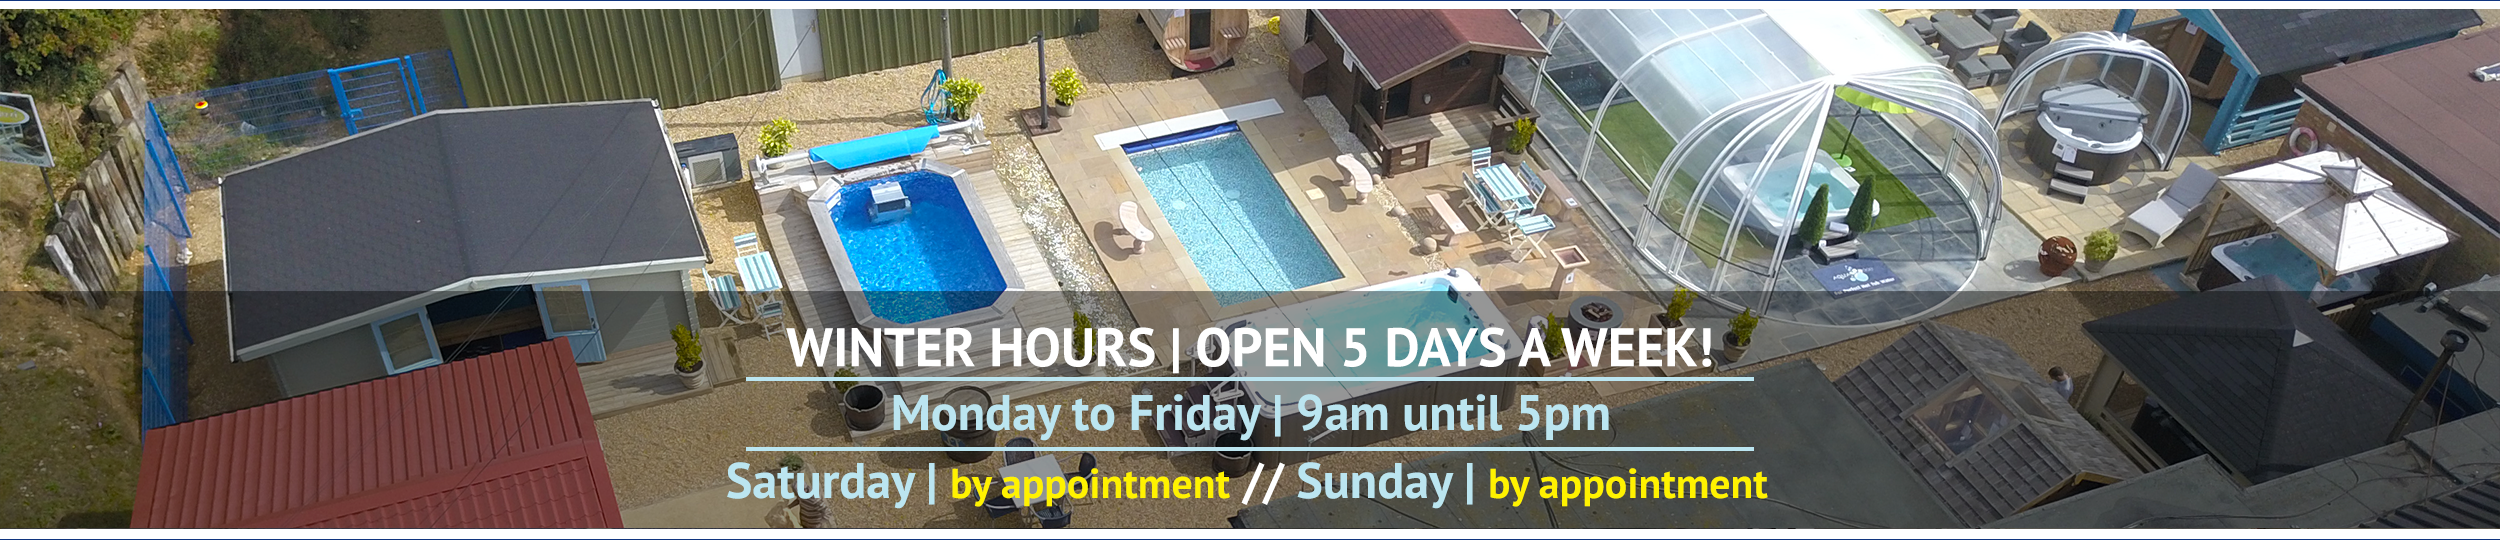 Front page slider graphic for the Wensum Pools Ltd Winter 2020 opening hours.